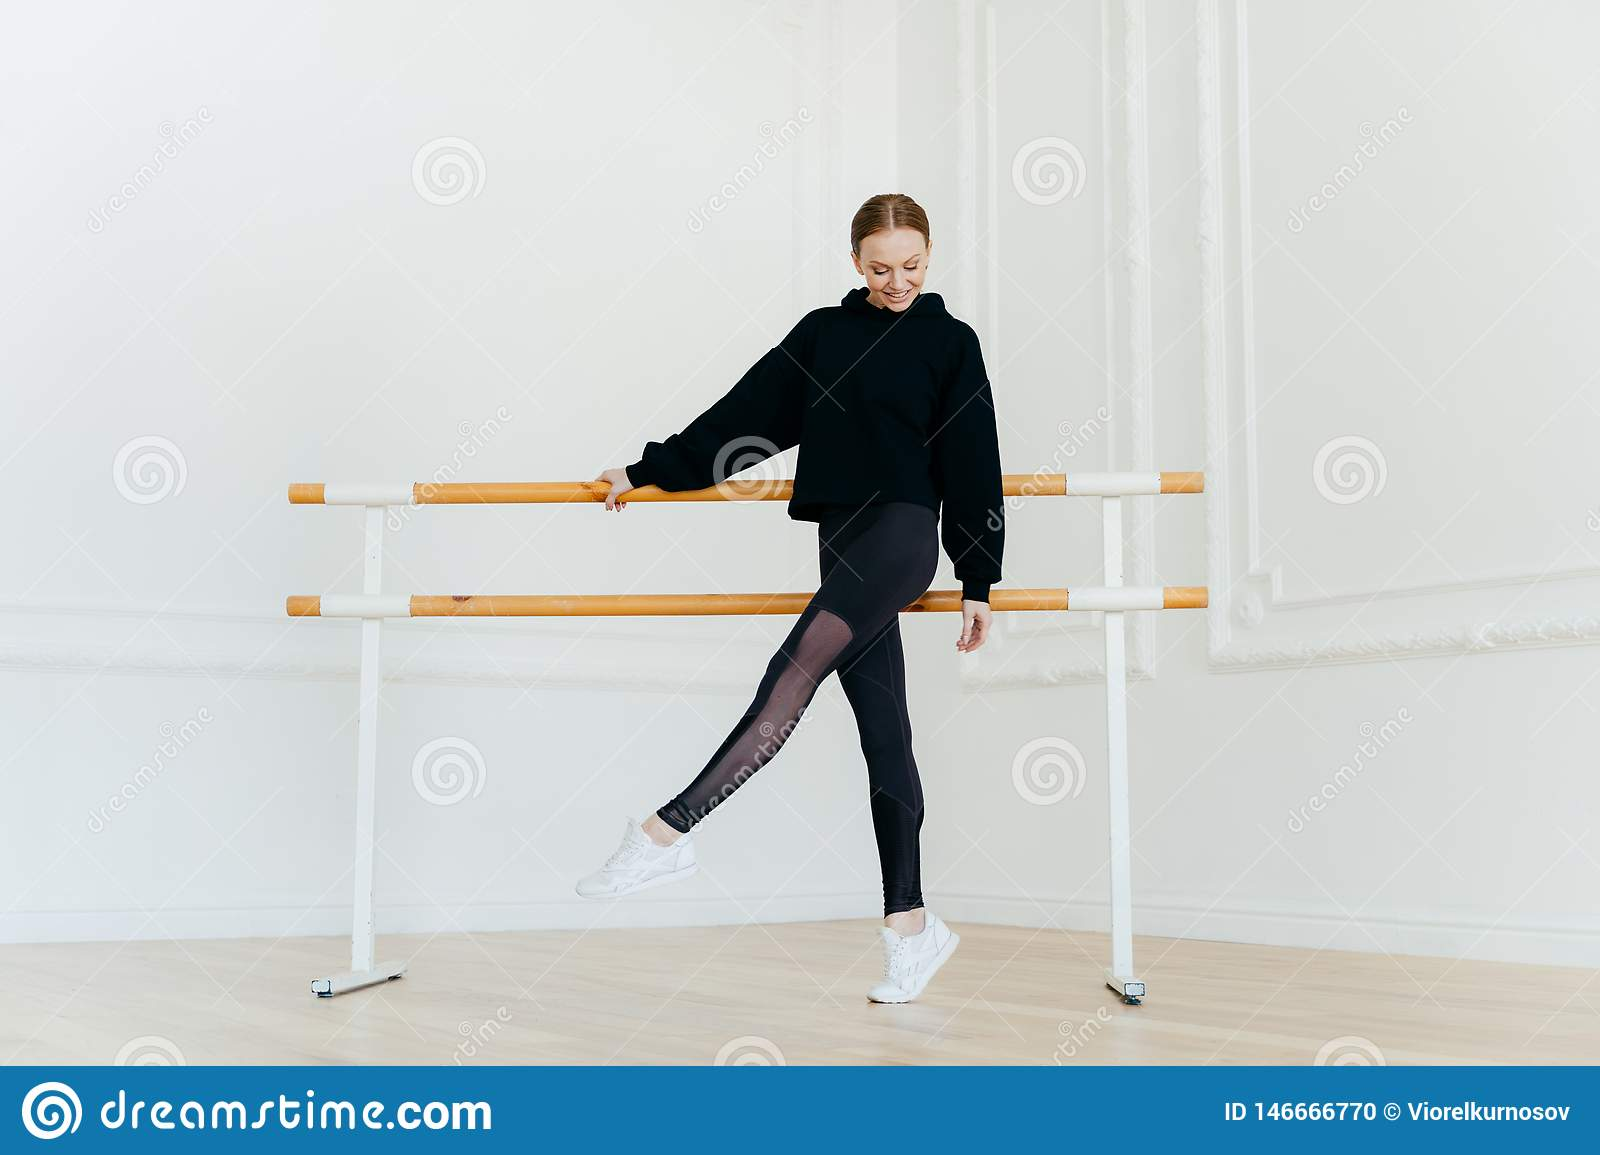 Young ballet dancer has warm up, stands near handrails, dressed in black sportclothes, stands on tip toe, wears white sneakers,